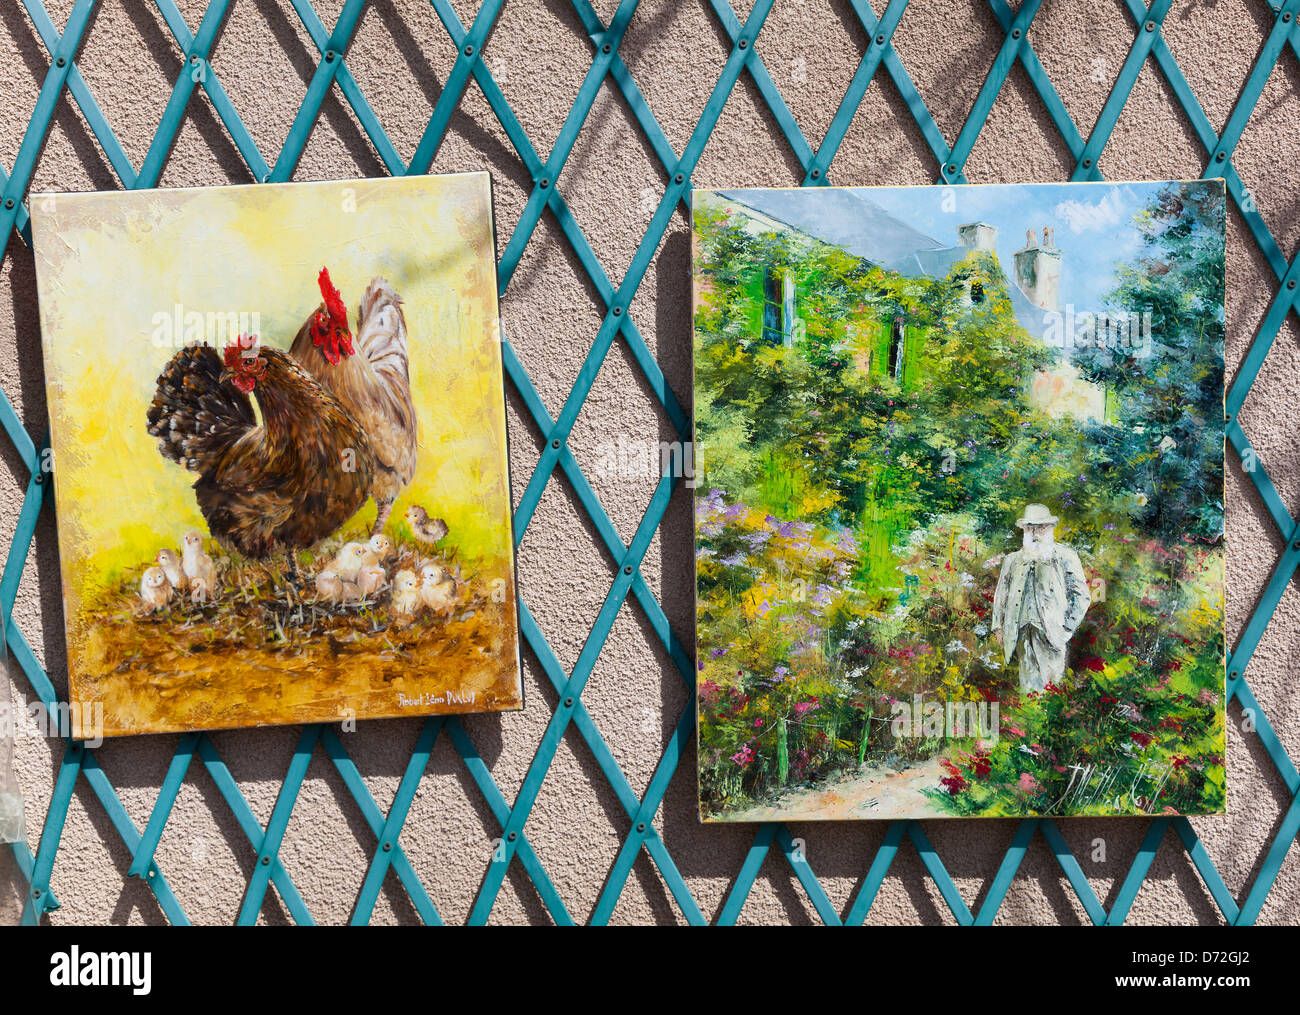 Painting in Giverny, Haute Normandie, France - Stock Image